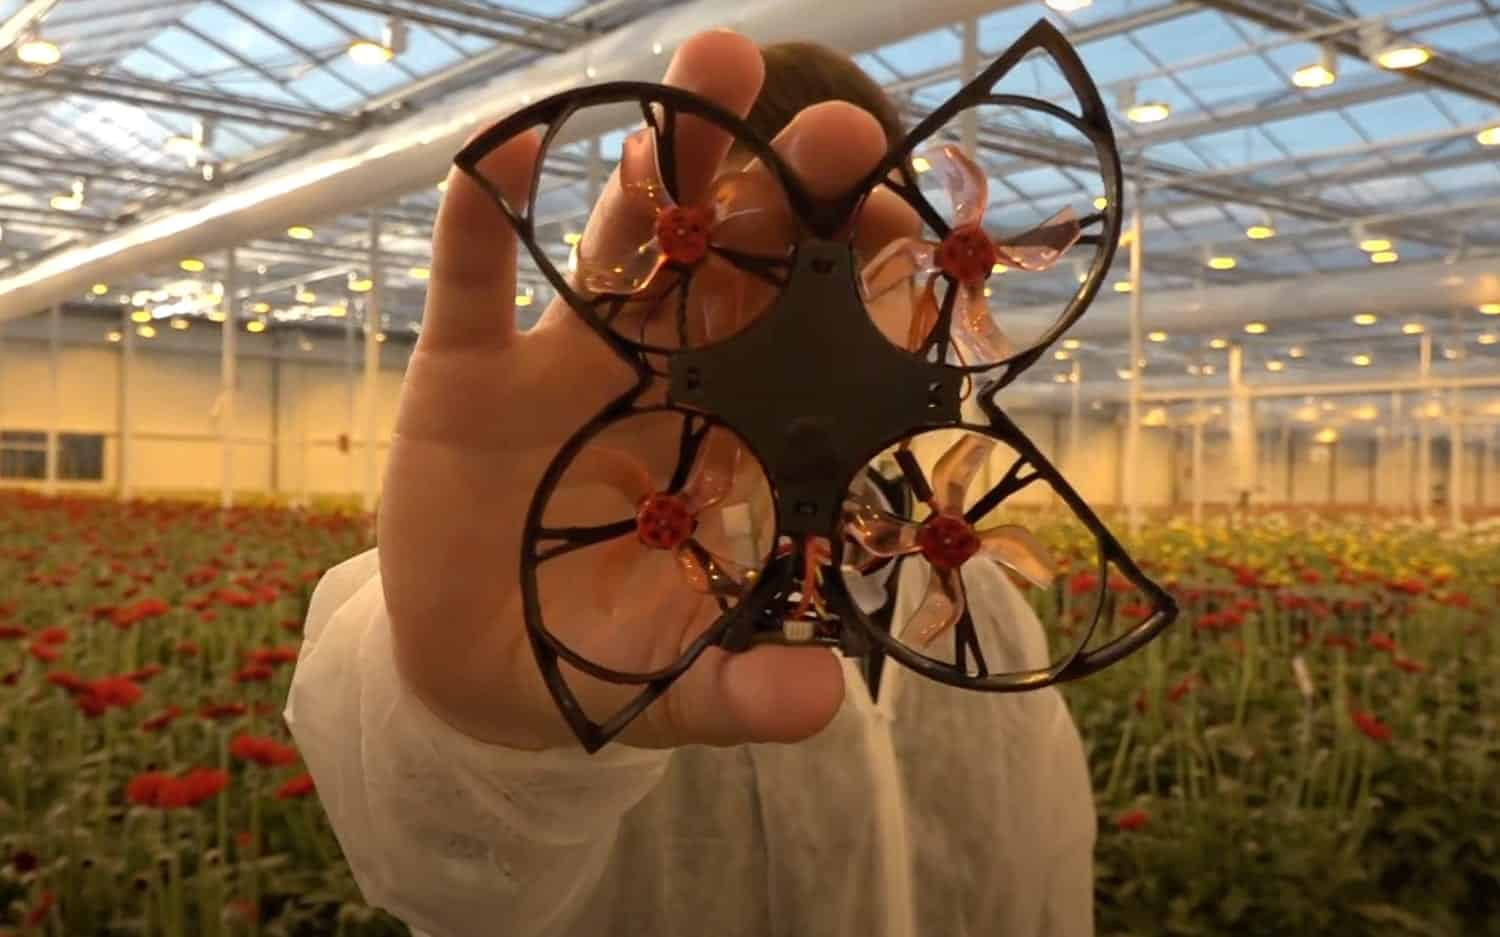 Moth-killing drone hunts and destroys unwanted insects in Dutch greenhouses